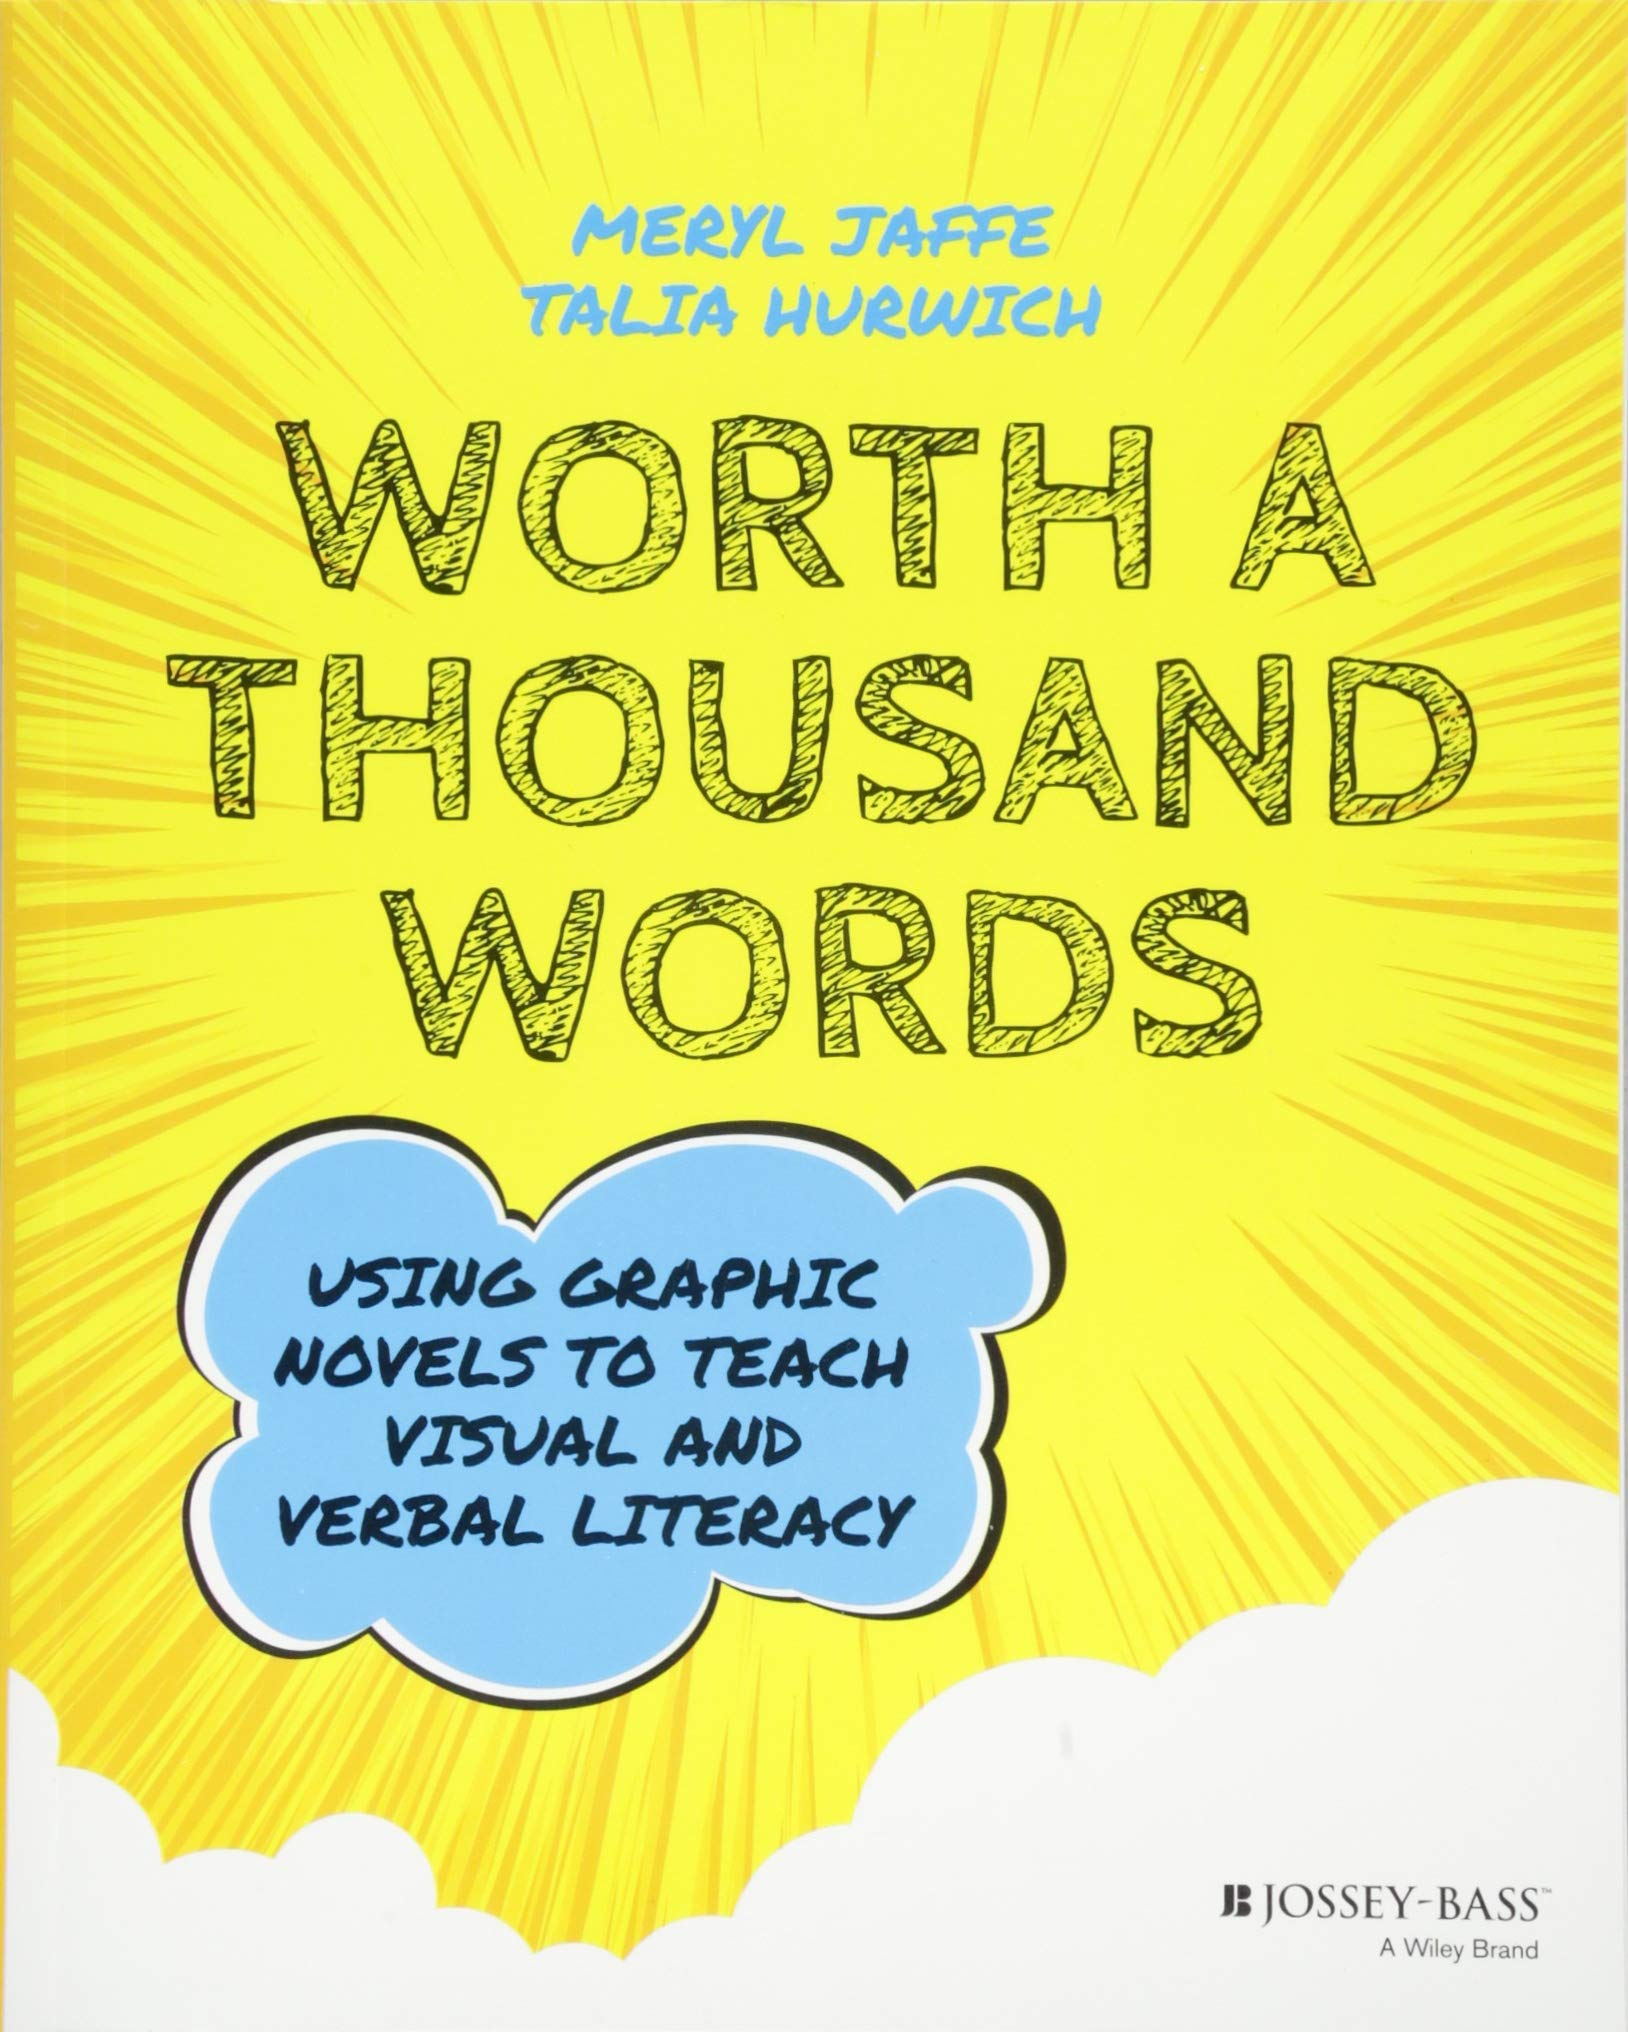 Worth A Thousand Words  Using Graphic Novels To Teach Visual And Verbal Literacy